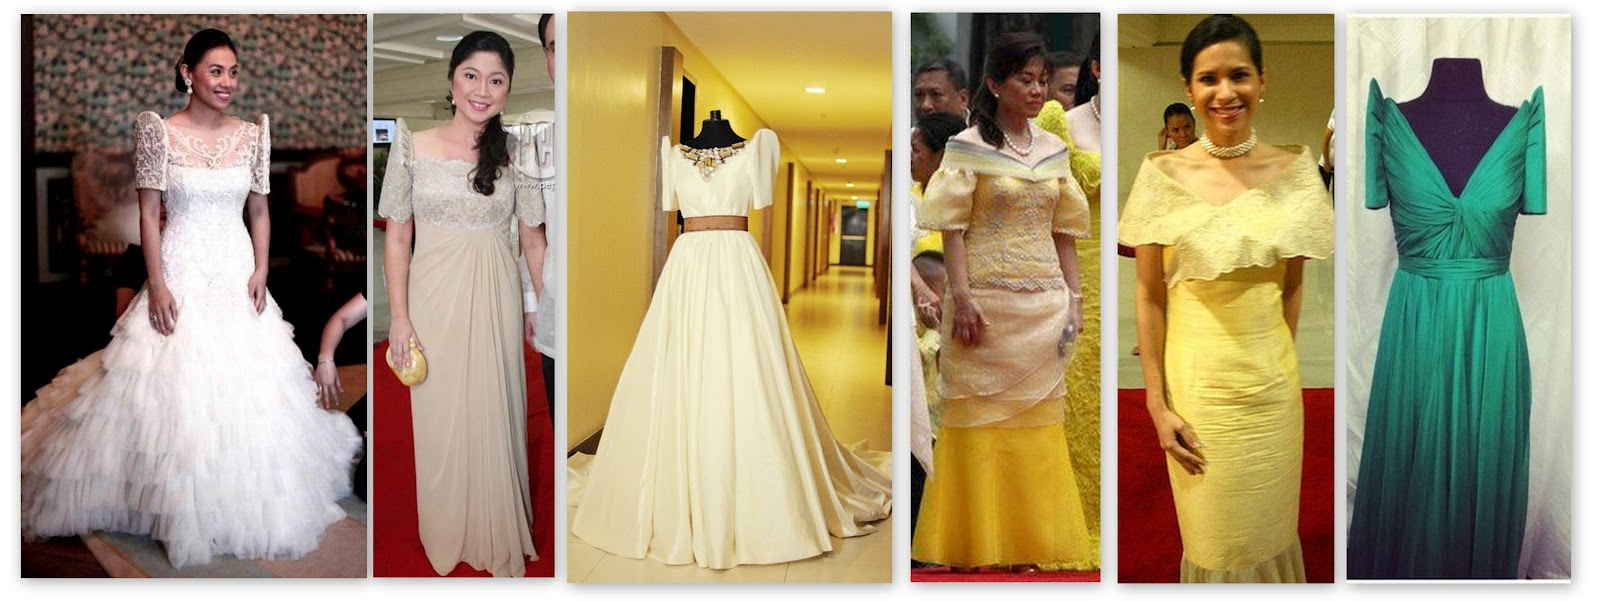 Filipiniana Terno Dress http://scribblesfromthesouth.blogspot.com/2012/09/filipiniana.html